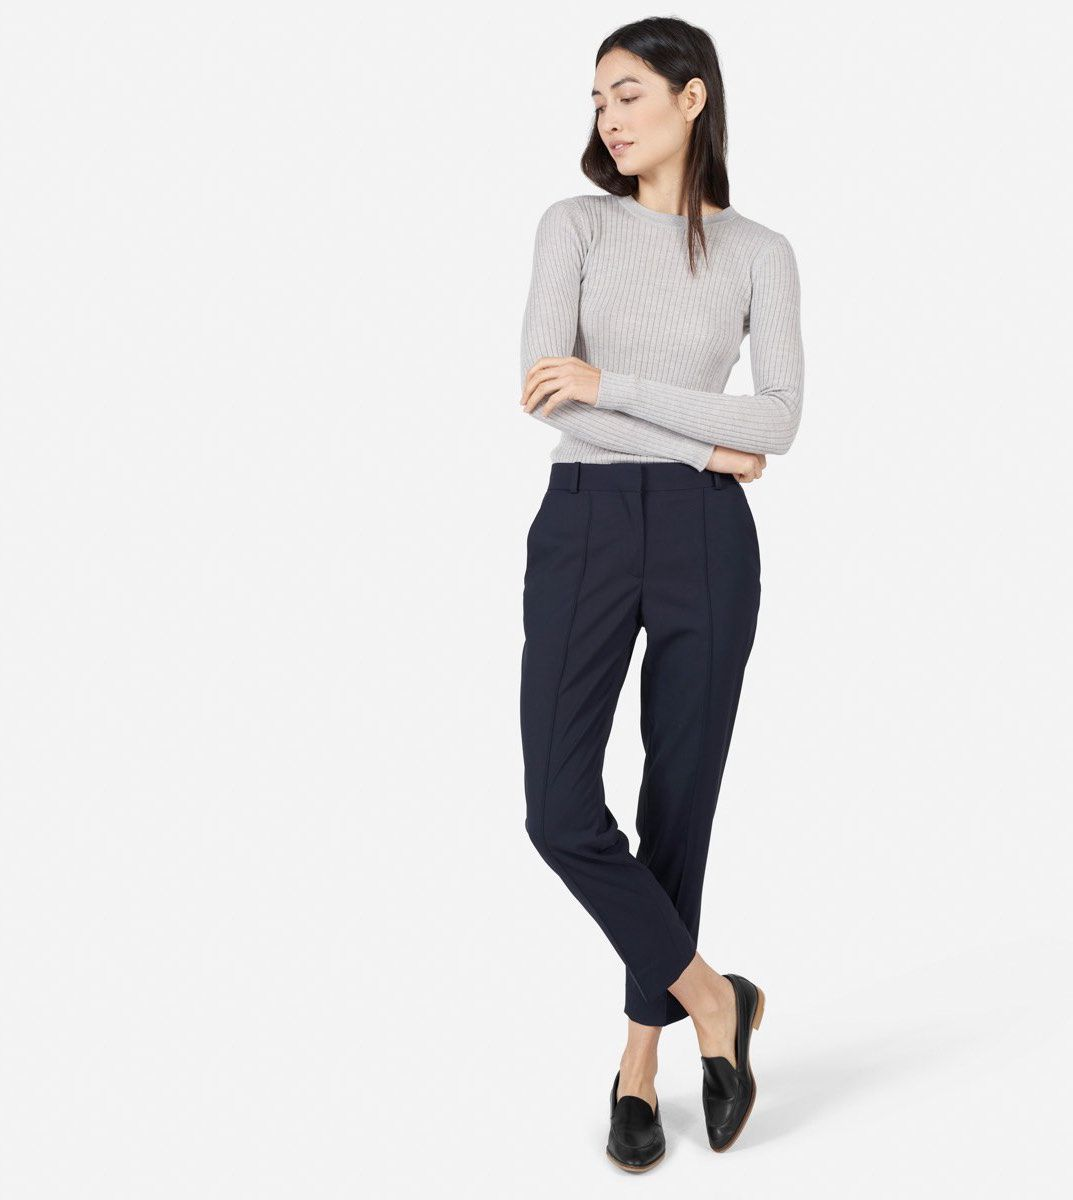 8671cc7dca77d What to Wear to Work, From Women Who Have It Figured Out - Vox